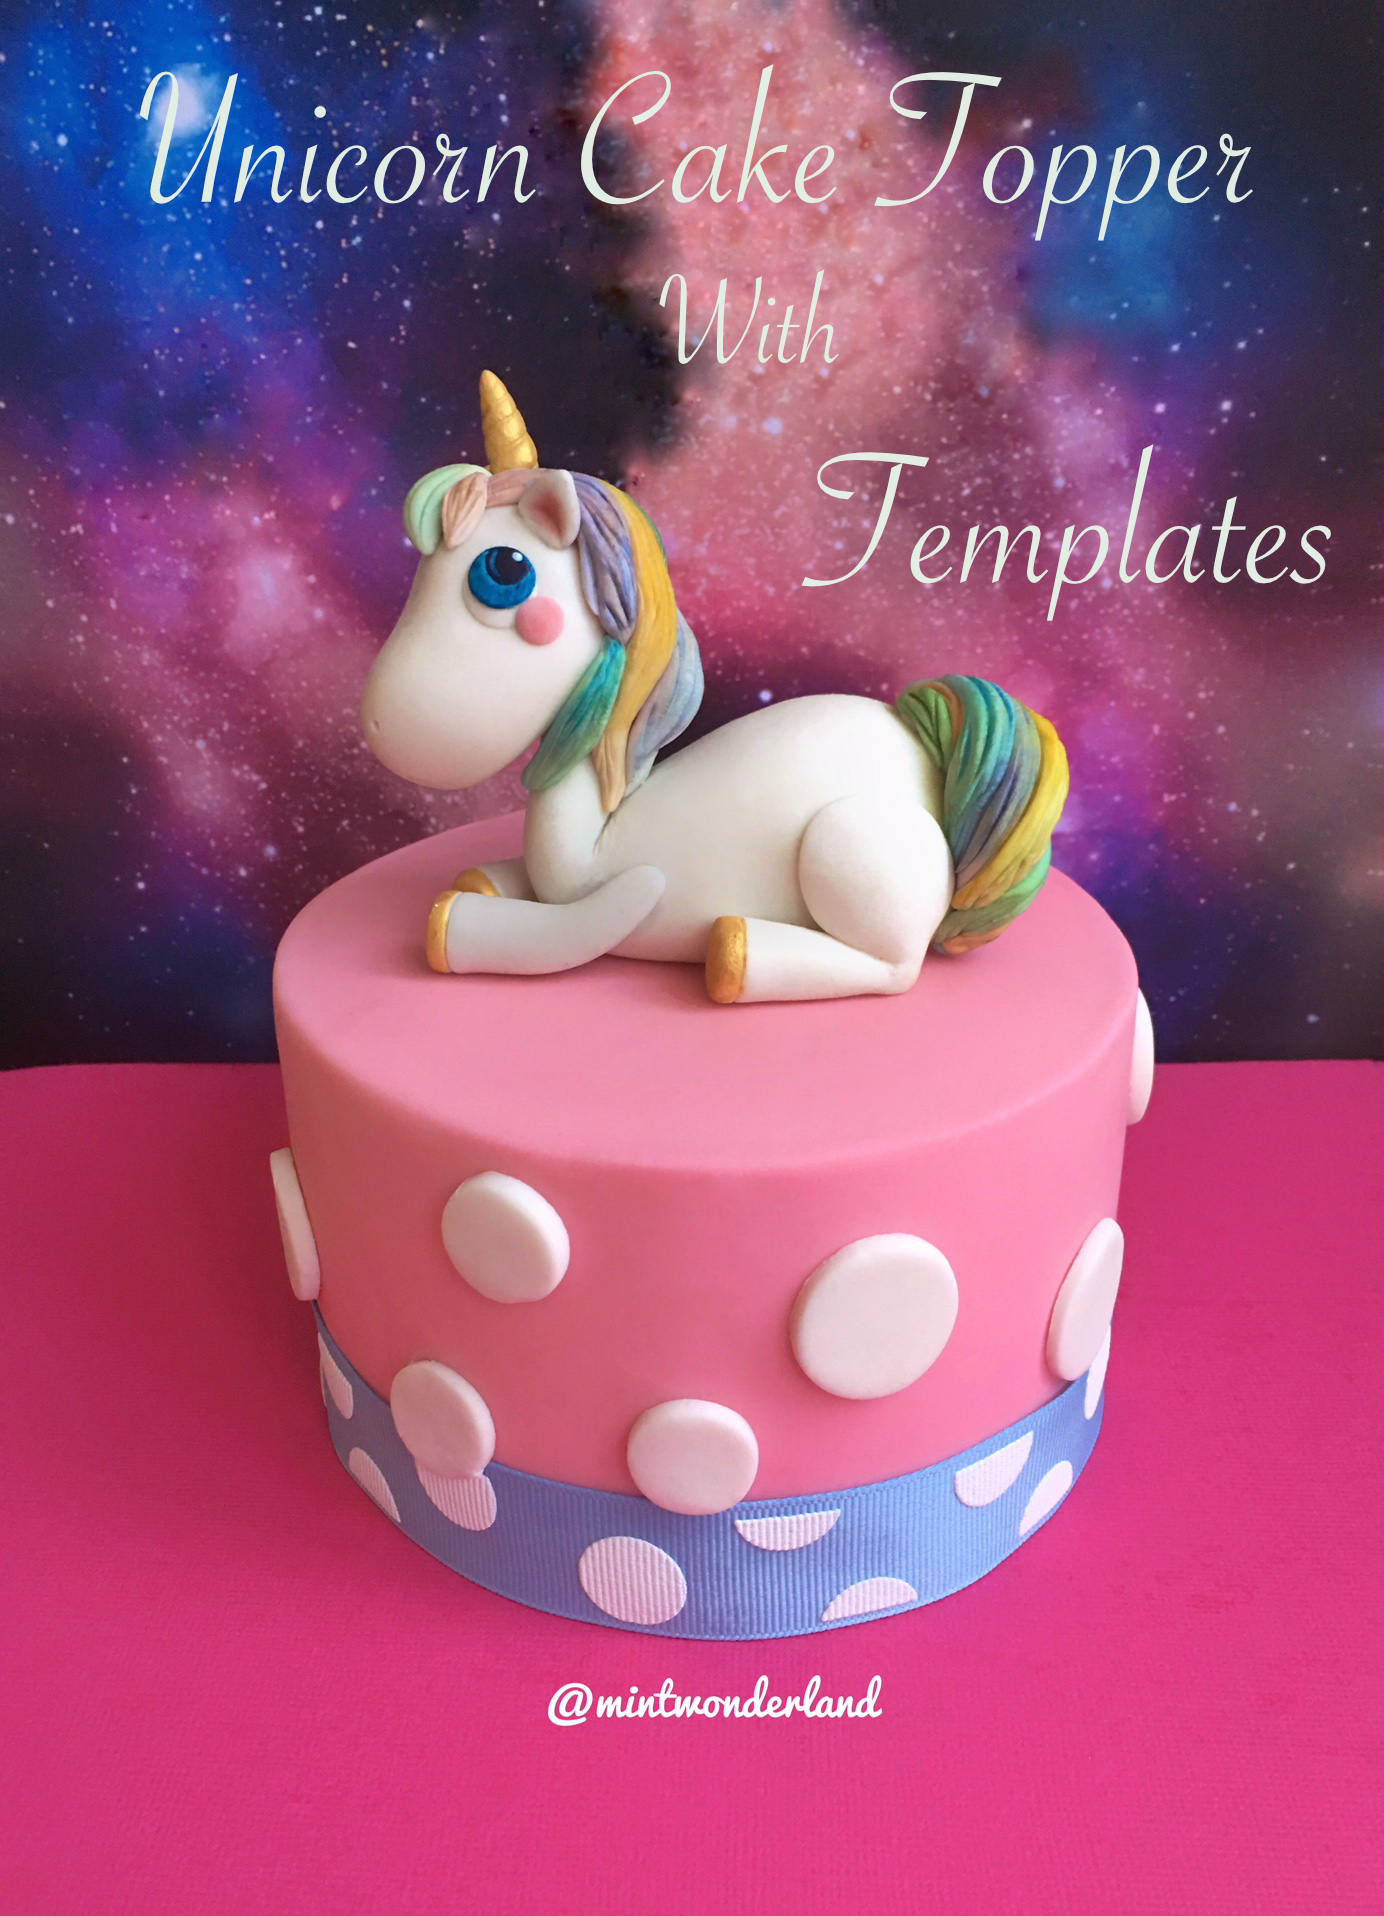 Magical Unicorn Cake Topper with Templates Tutorial PDF | Etsy